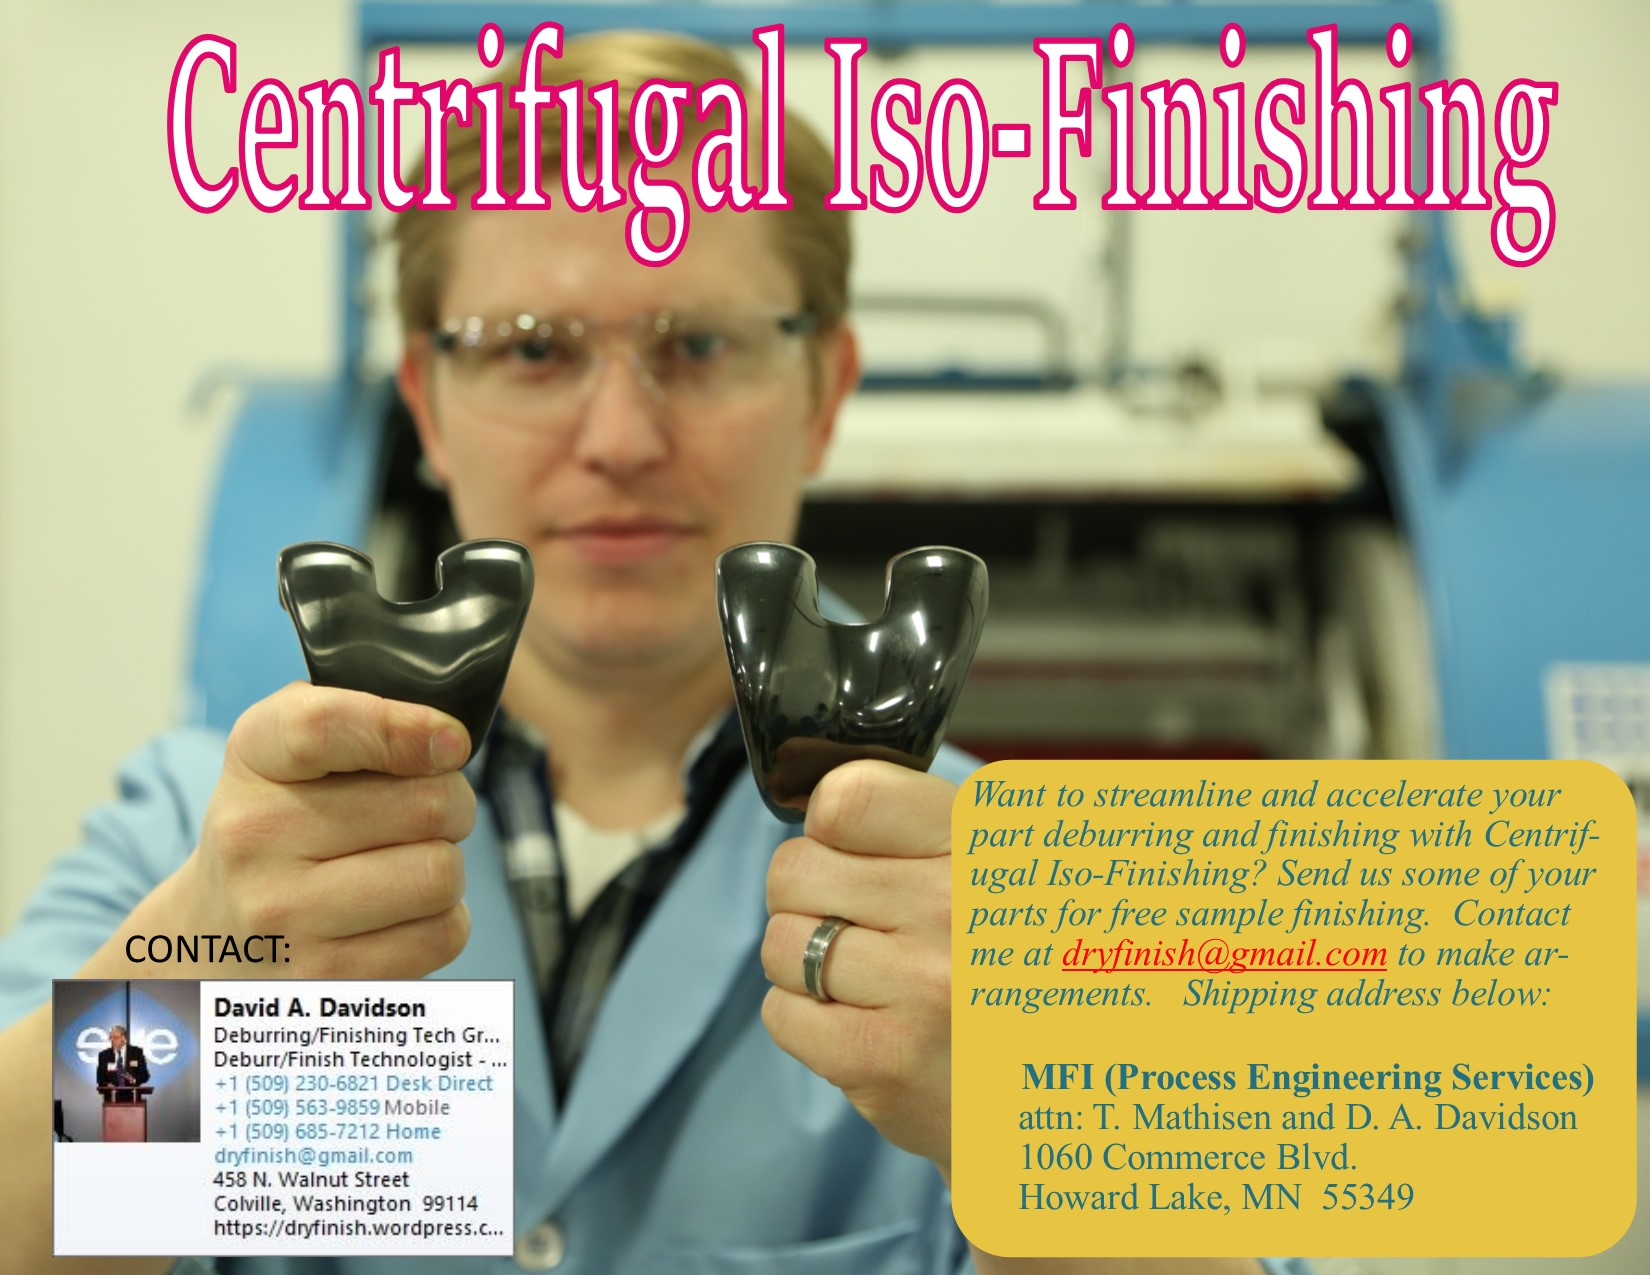 CENTRIFUGAL ISO-FINISHING: Free Sample Processing Request Form